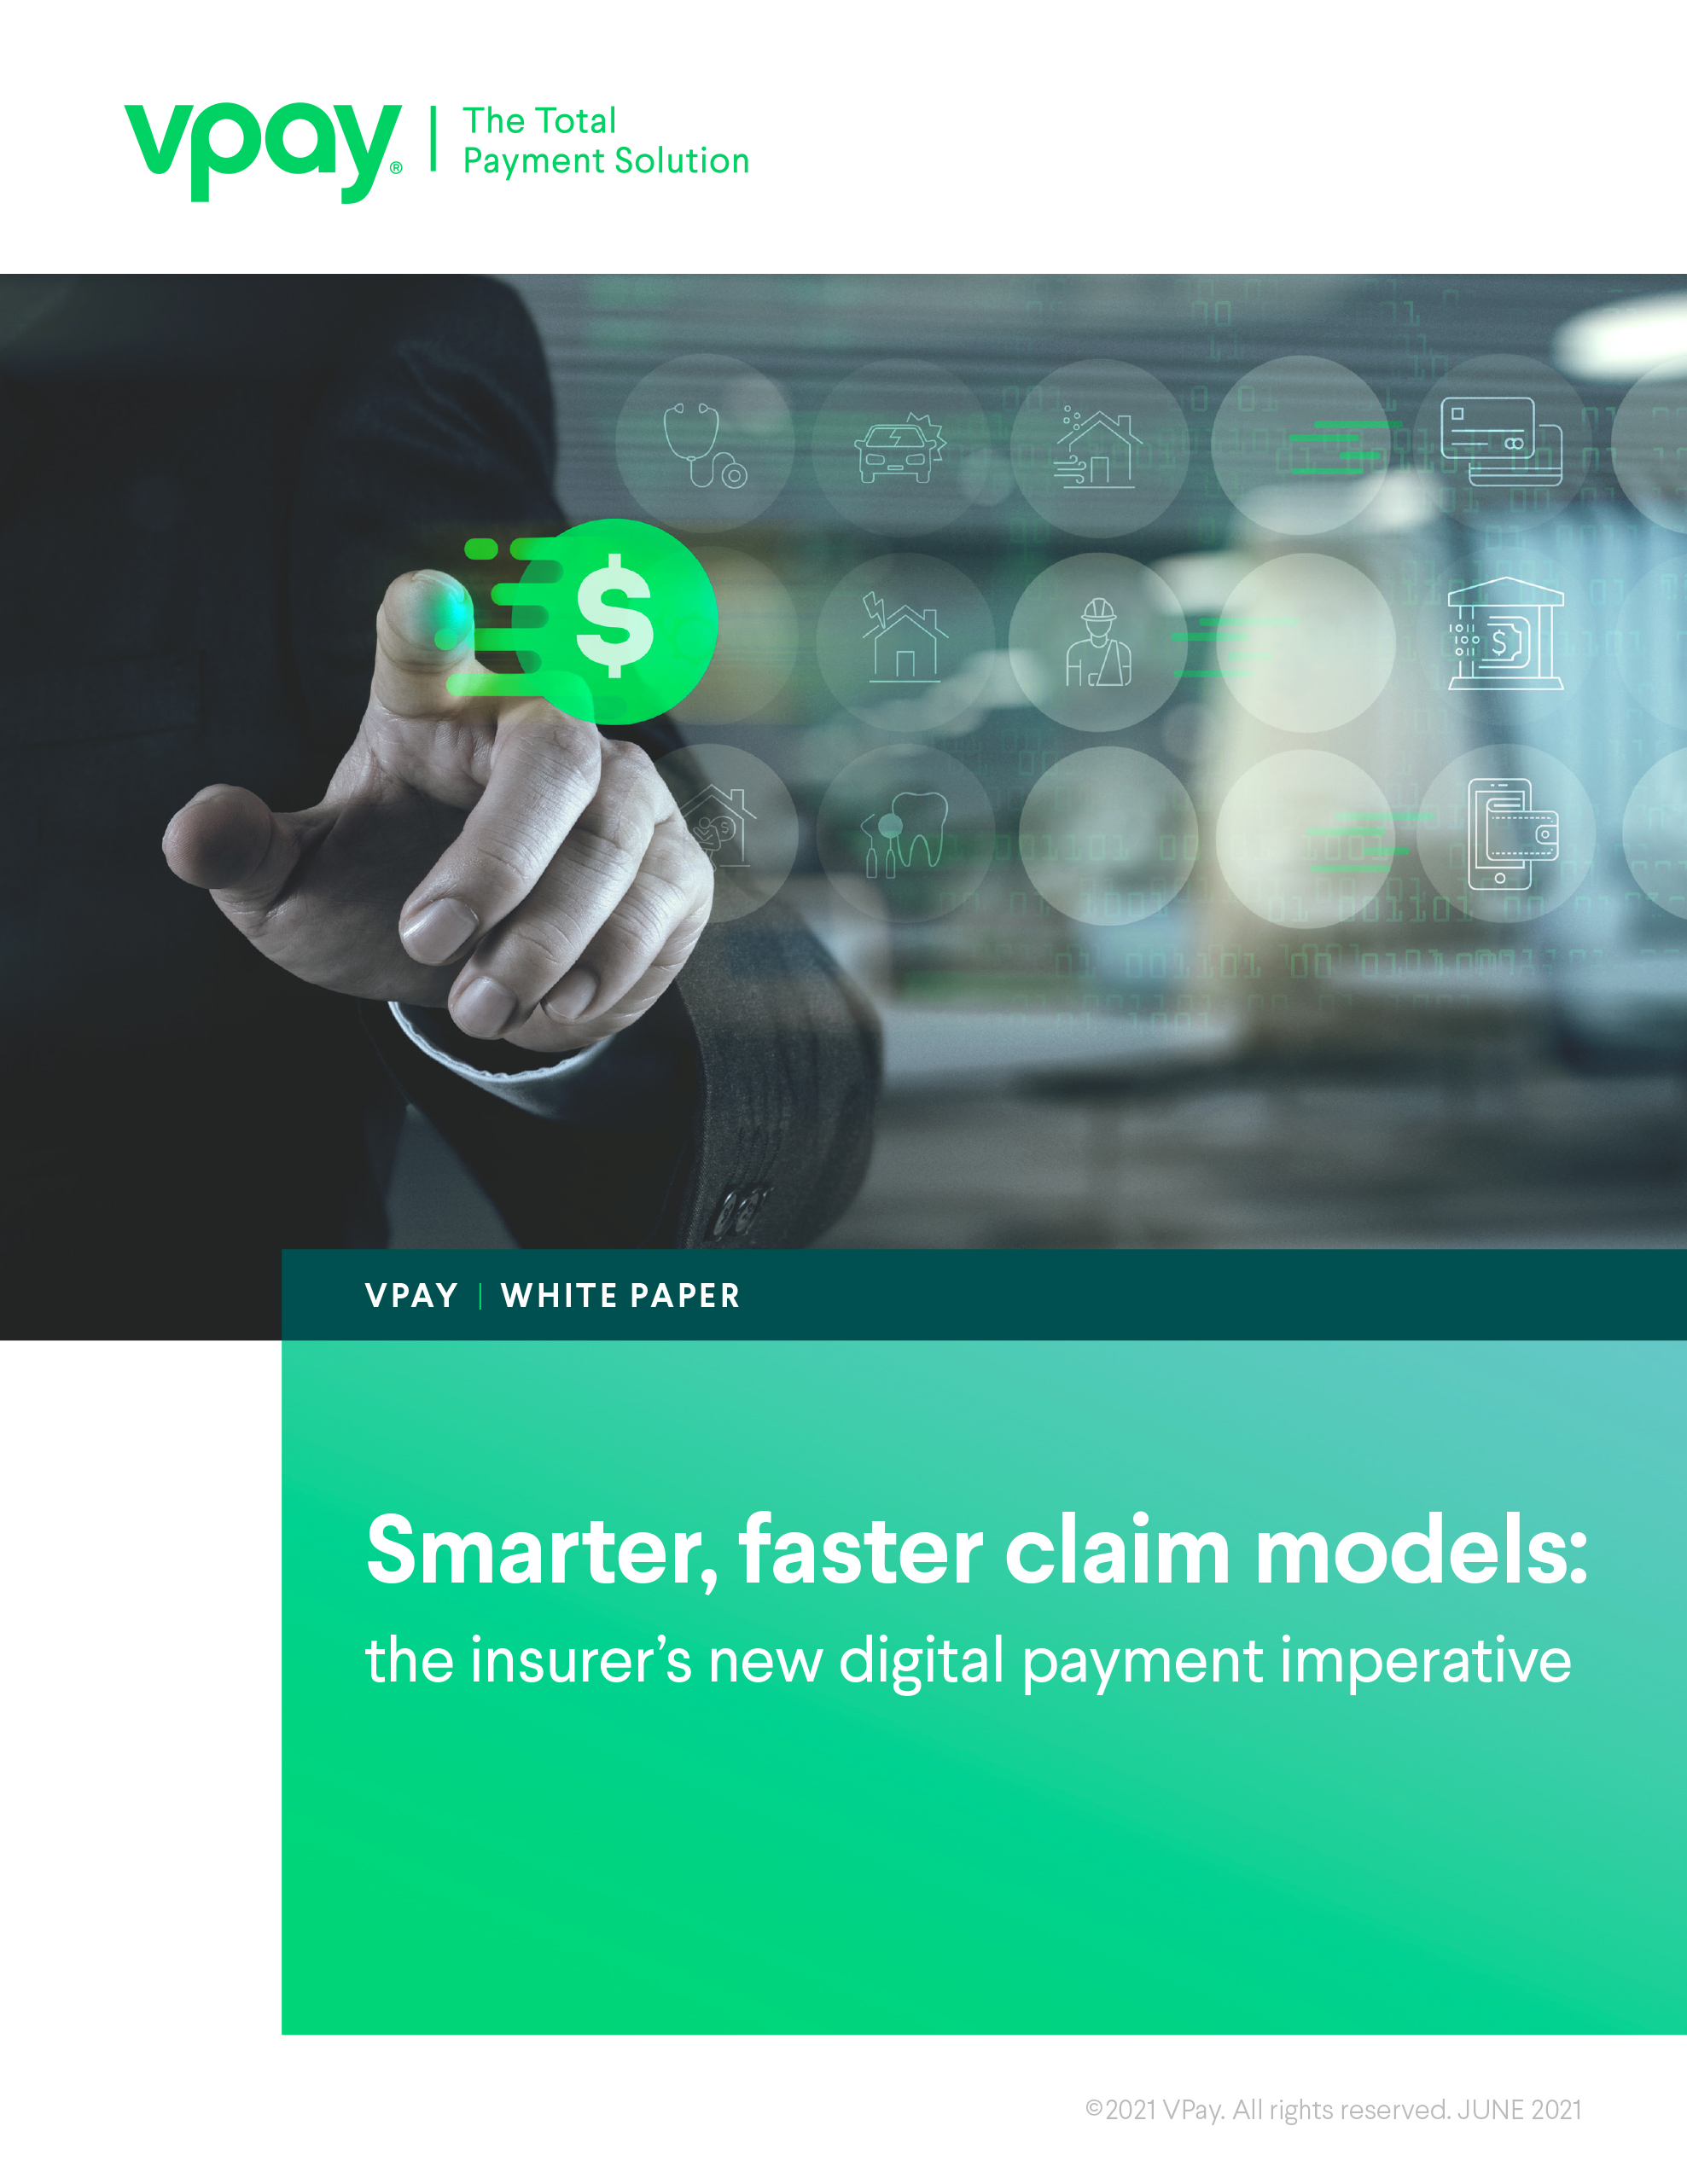 Smarter, Faster Claims Models: The Insurer's New Digital Payment Imperative